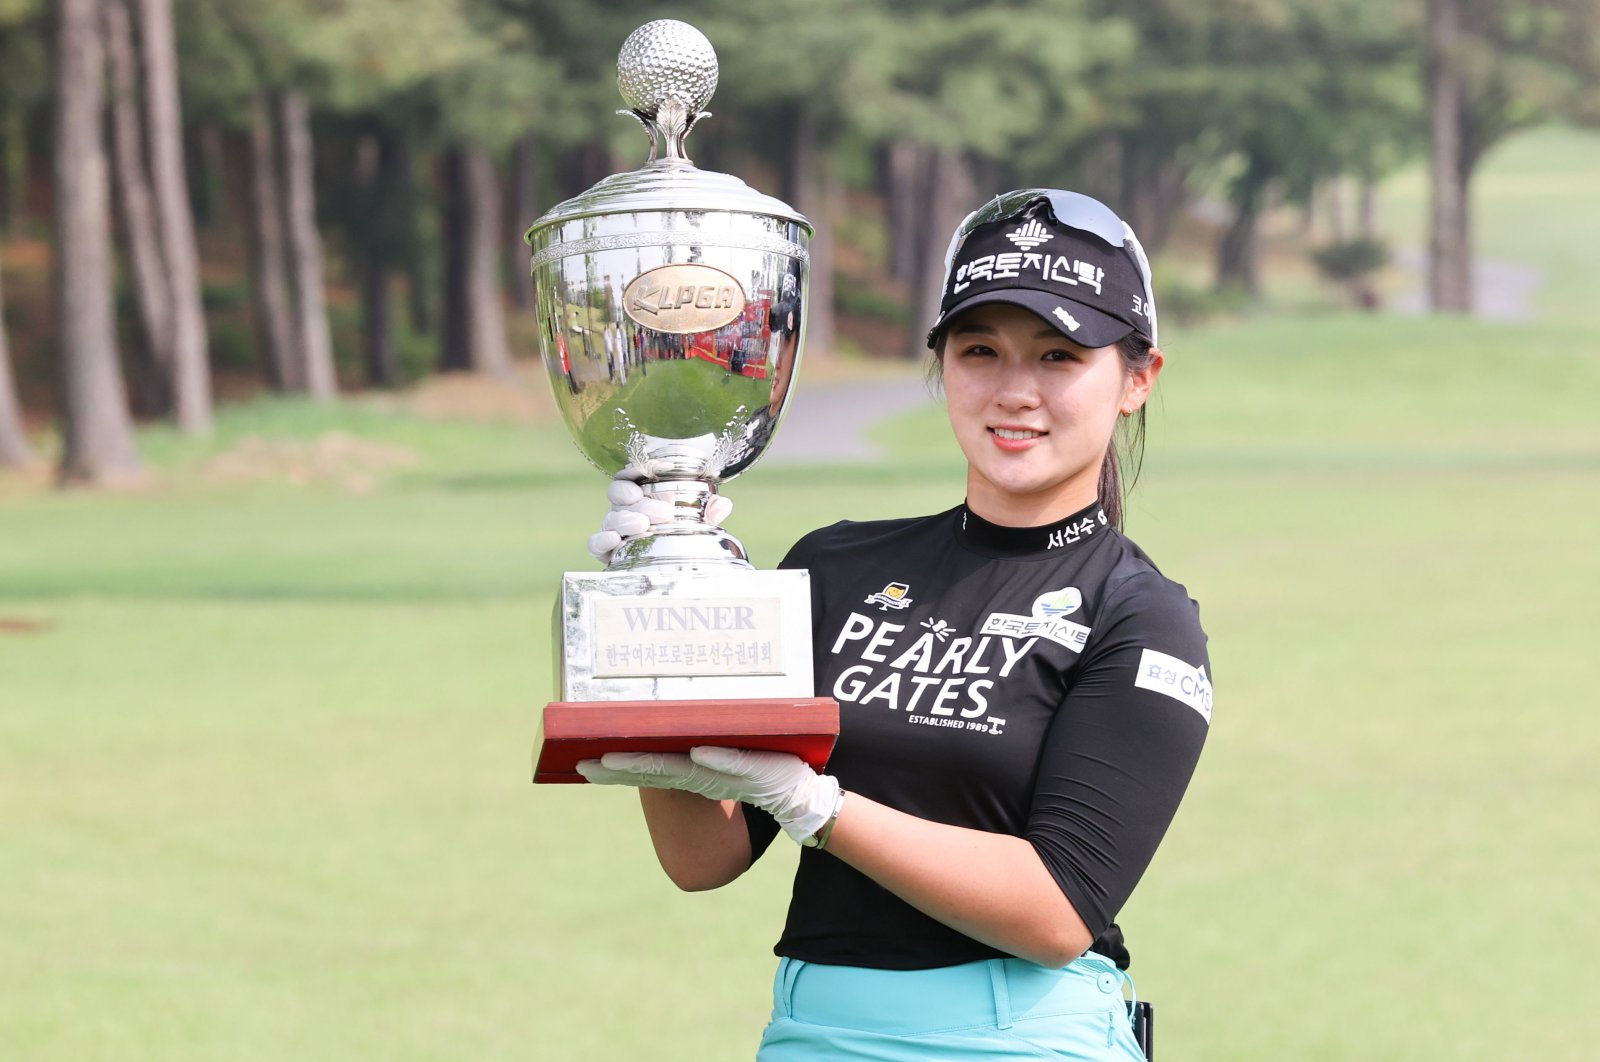 Park Hyun-kyung poses with the trophy after winning the final round of the KLPGA Championship golf tournament at Lakewood Country Club in Yangju, South Korea, May 17, 2020. (EPA Photo)